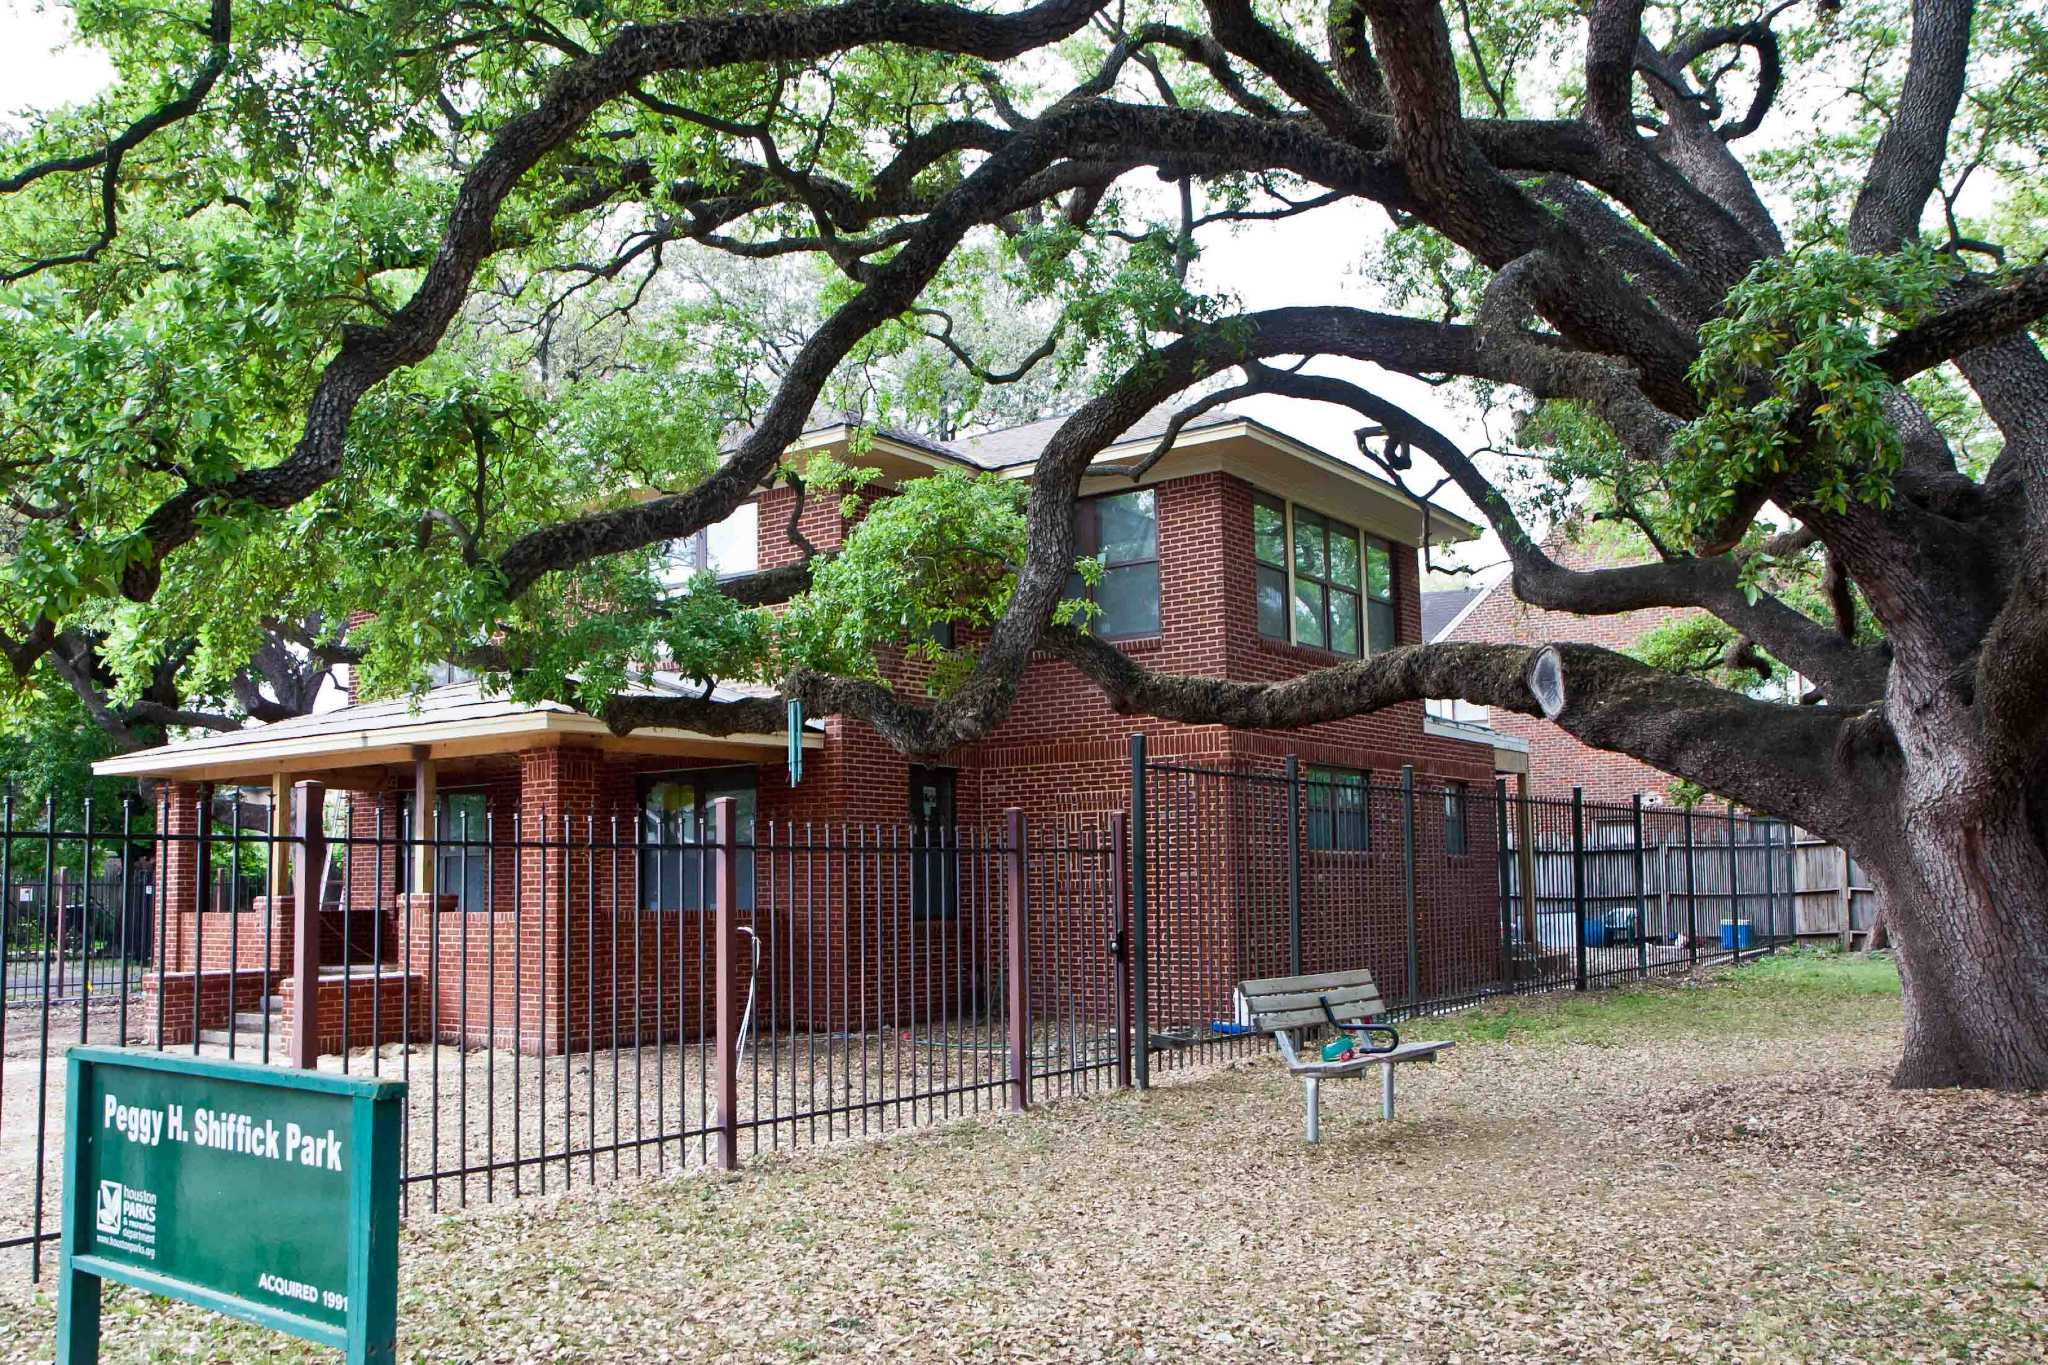 Art food and architecture on eclectic east montrose home tour art food and architecture on eclectic east montrose home tour houston chronicle jeuxipadfo Image collections